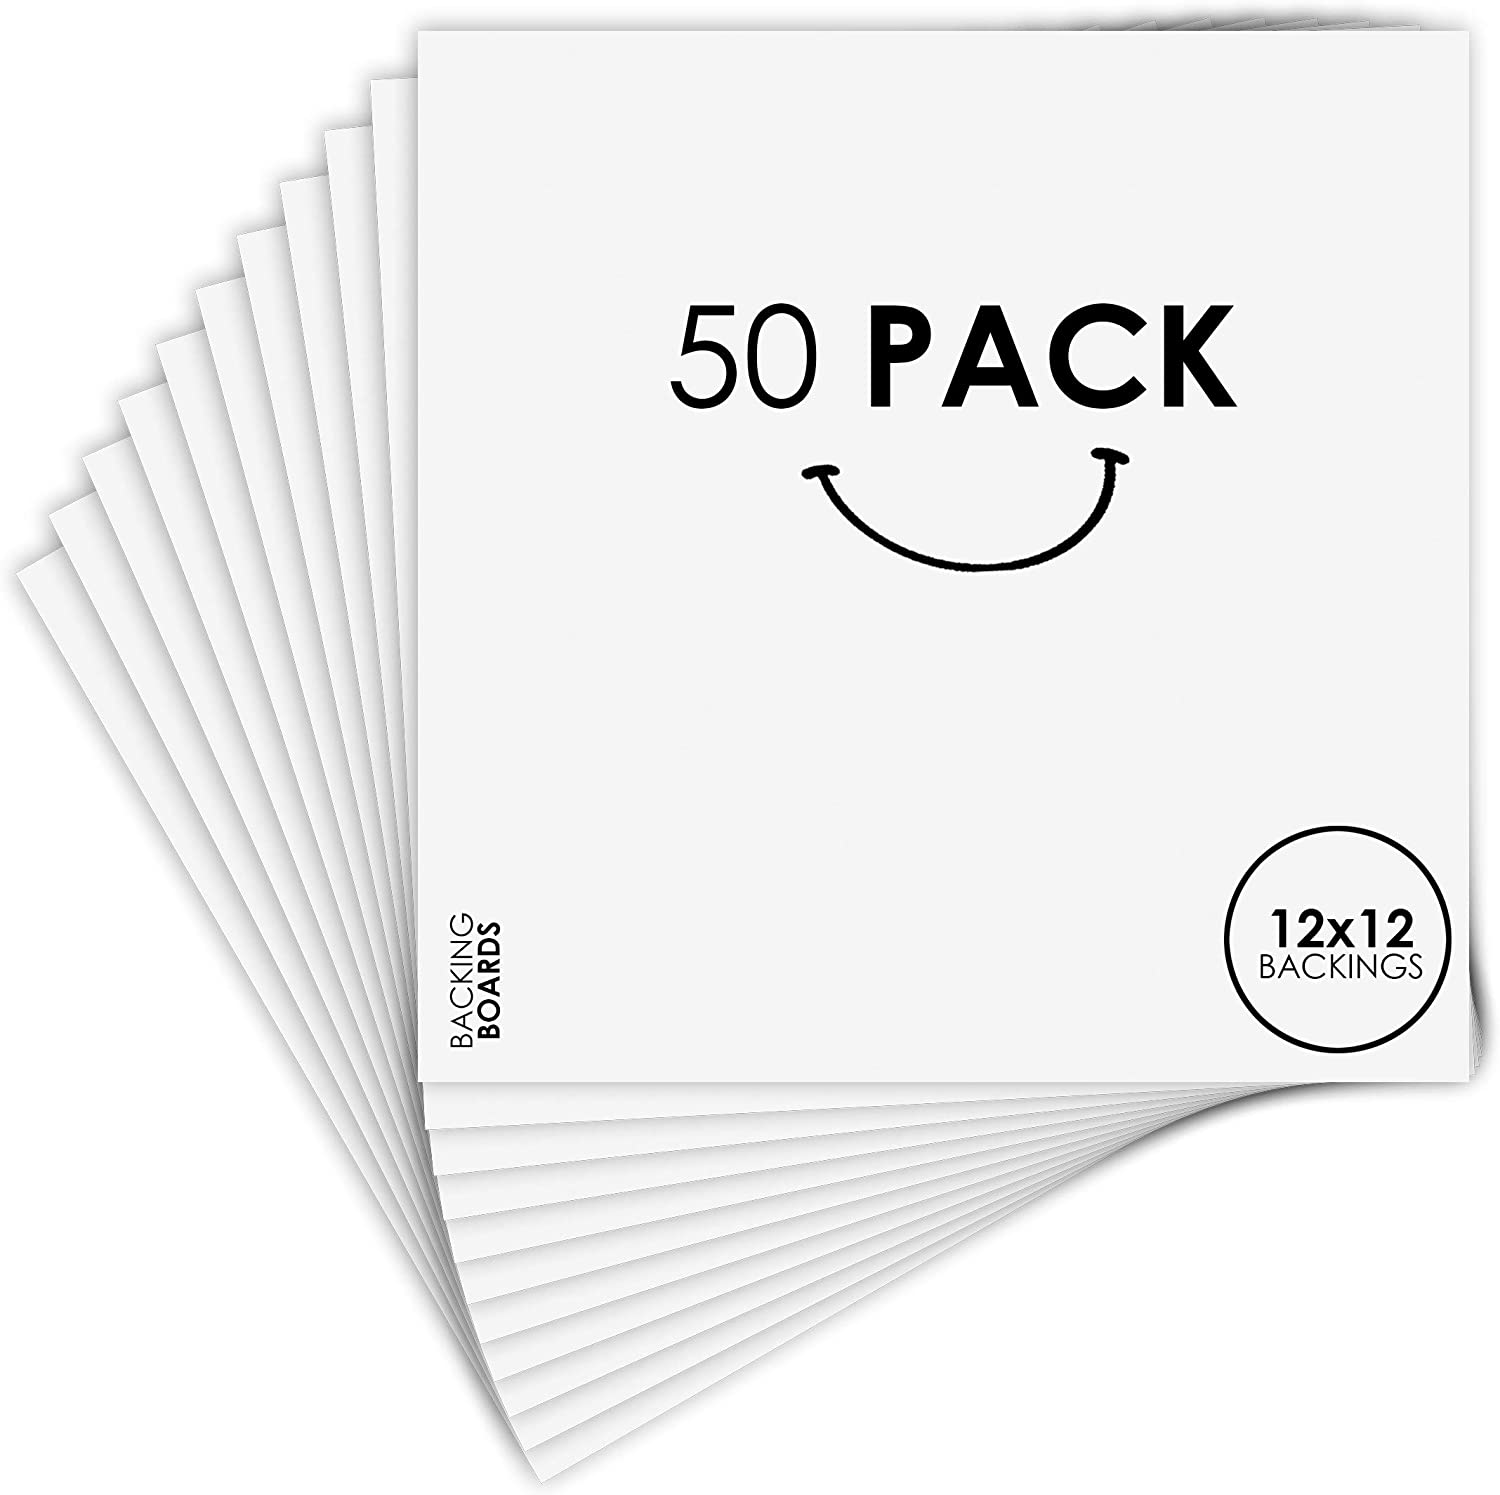 Set of 50 12x12 Backing Board